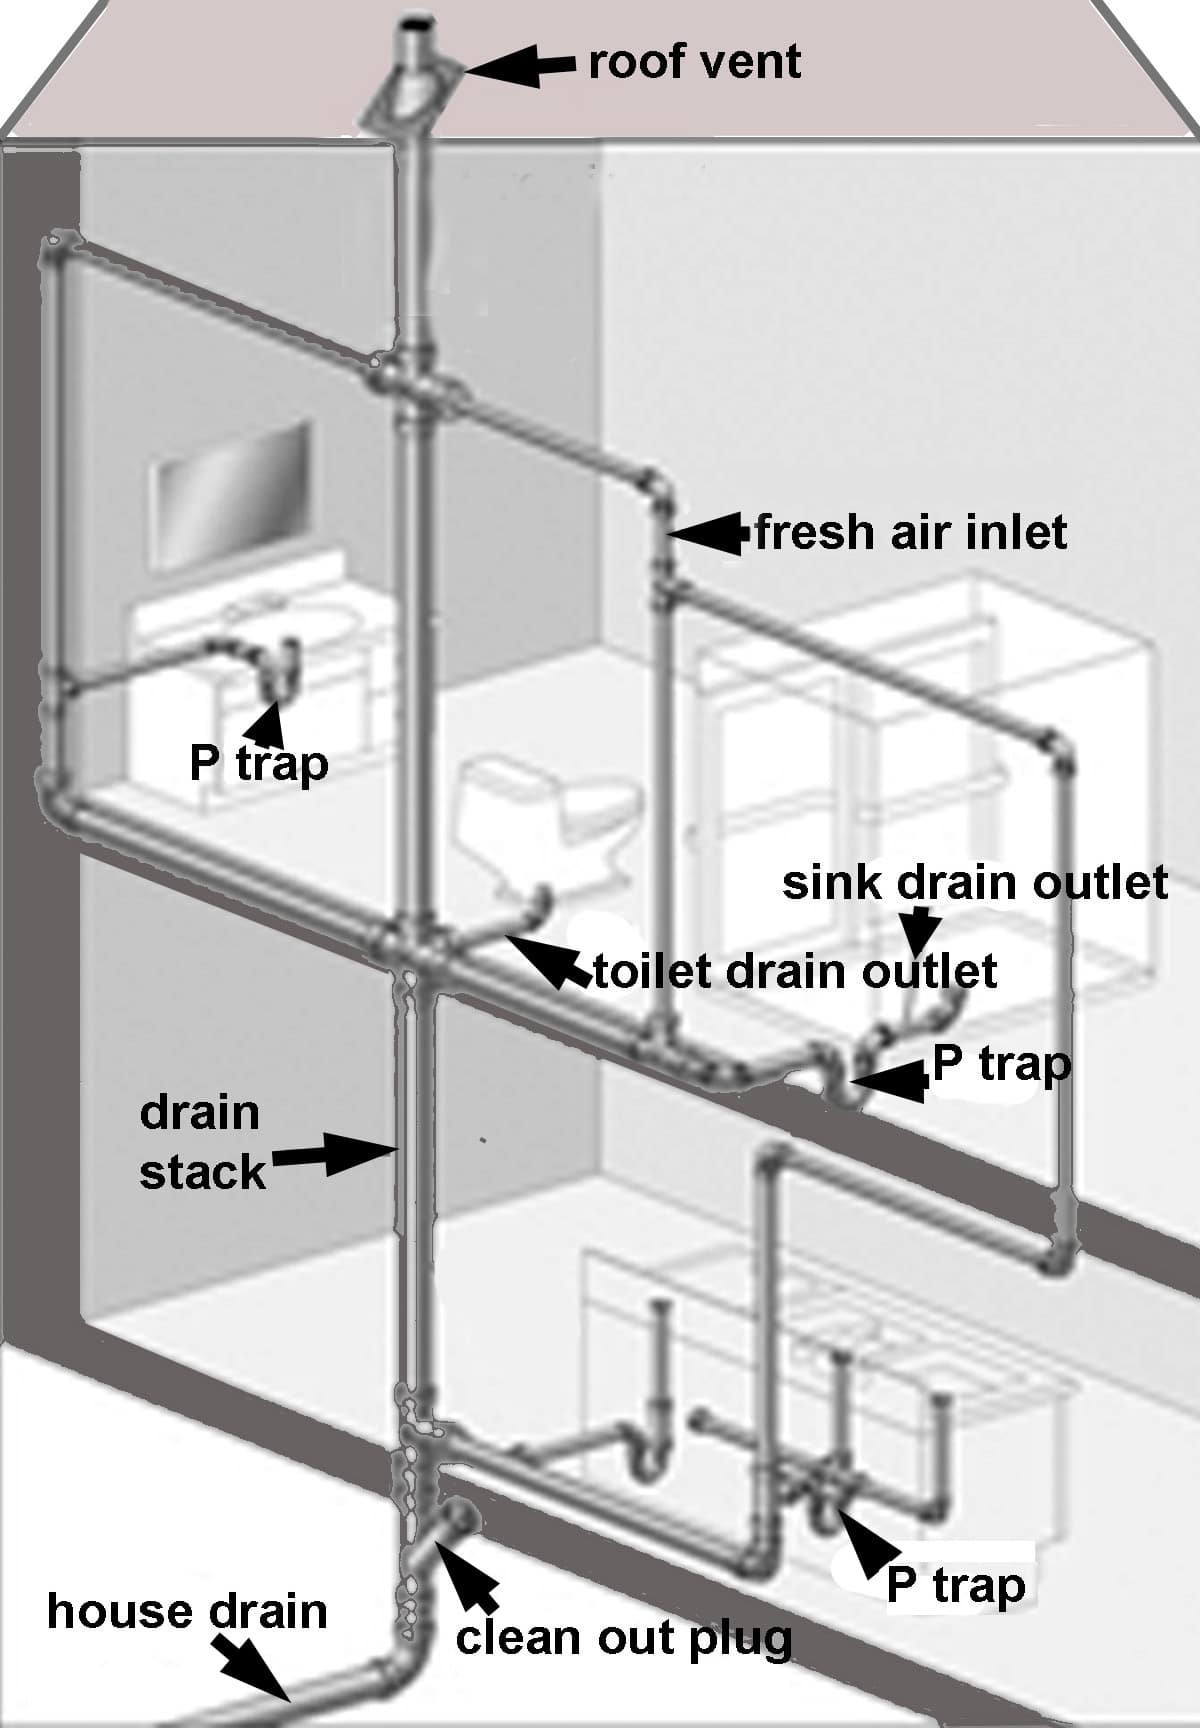 sewer plumbing venting diagram cat6 patch panel wiring learn about the different traps in your home and